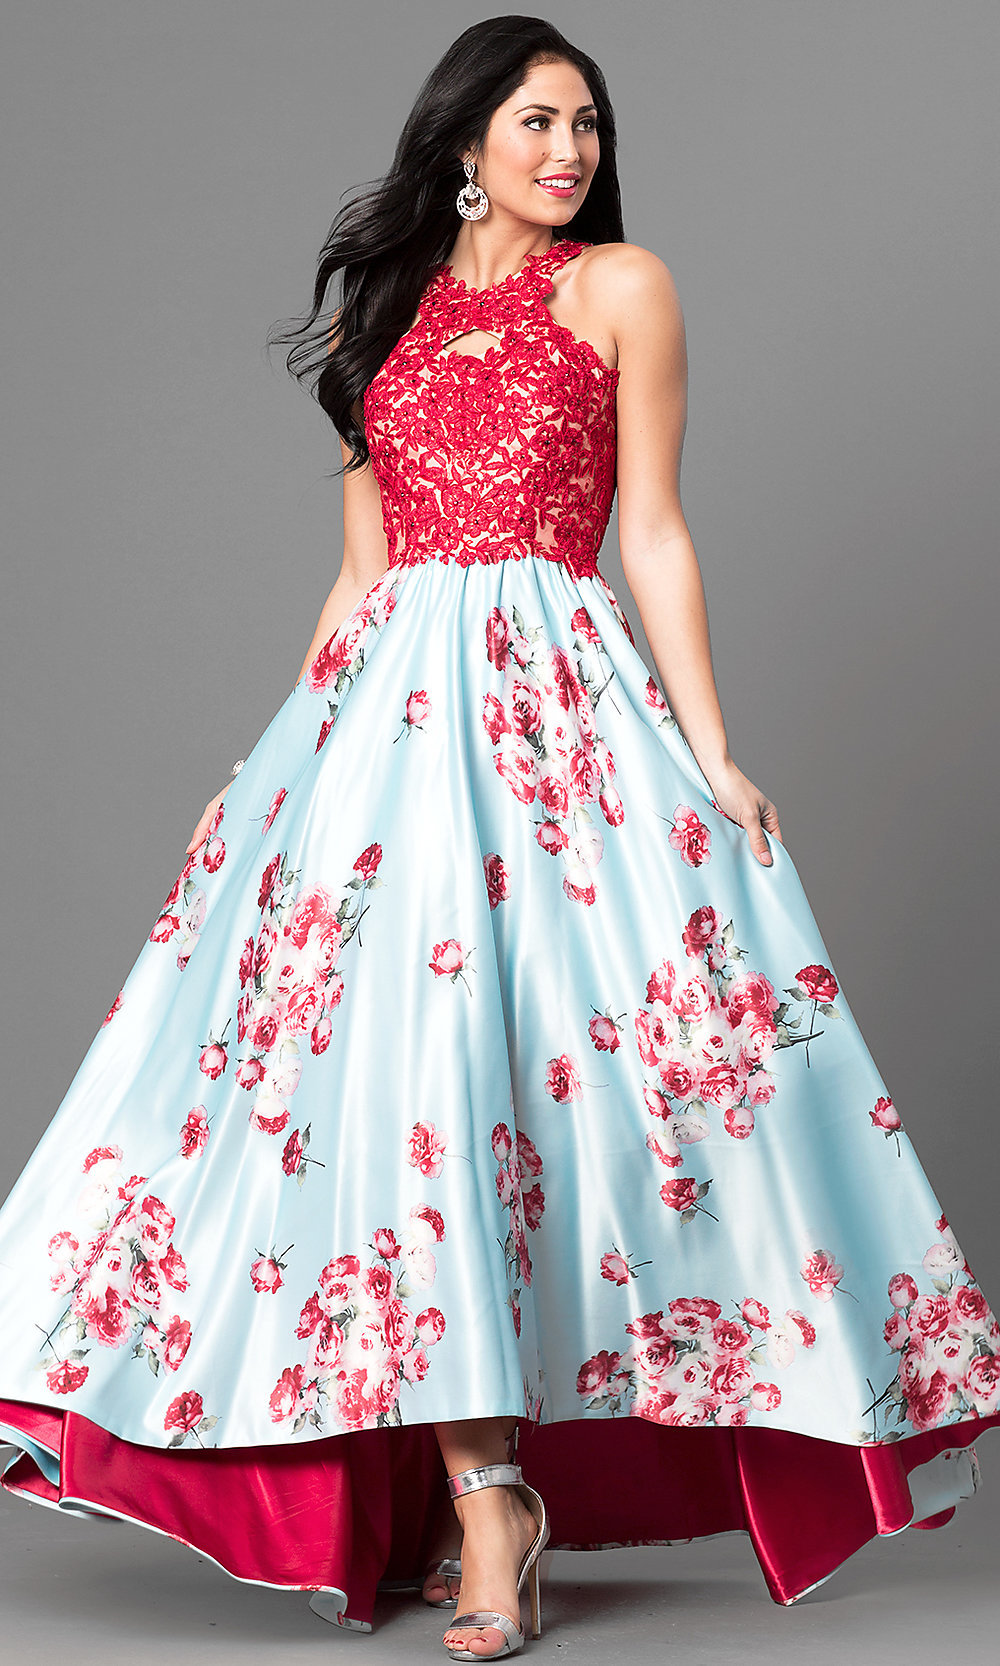 Floral Print High Low Prom Dress With Lace Promgirl